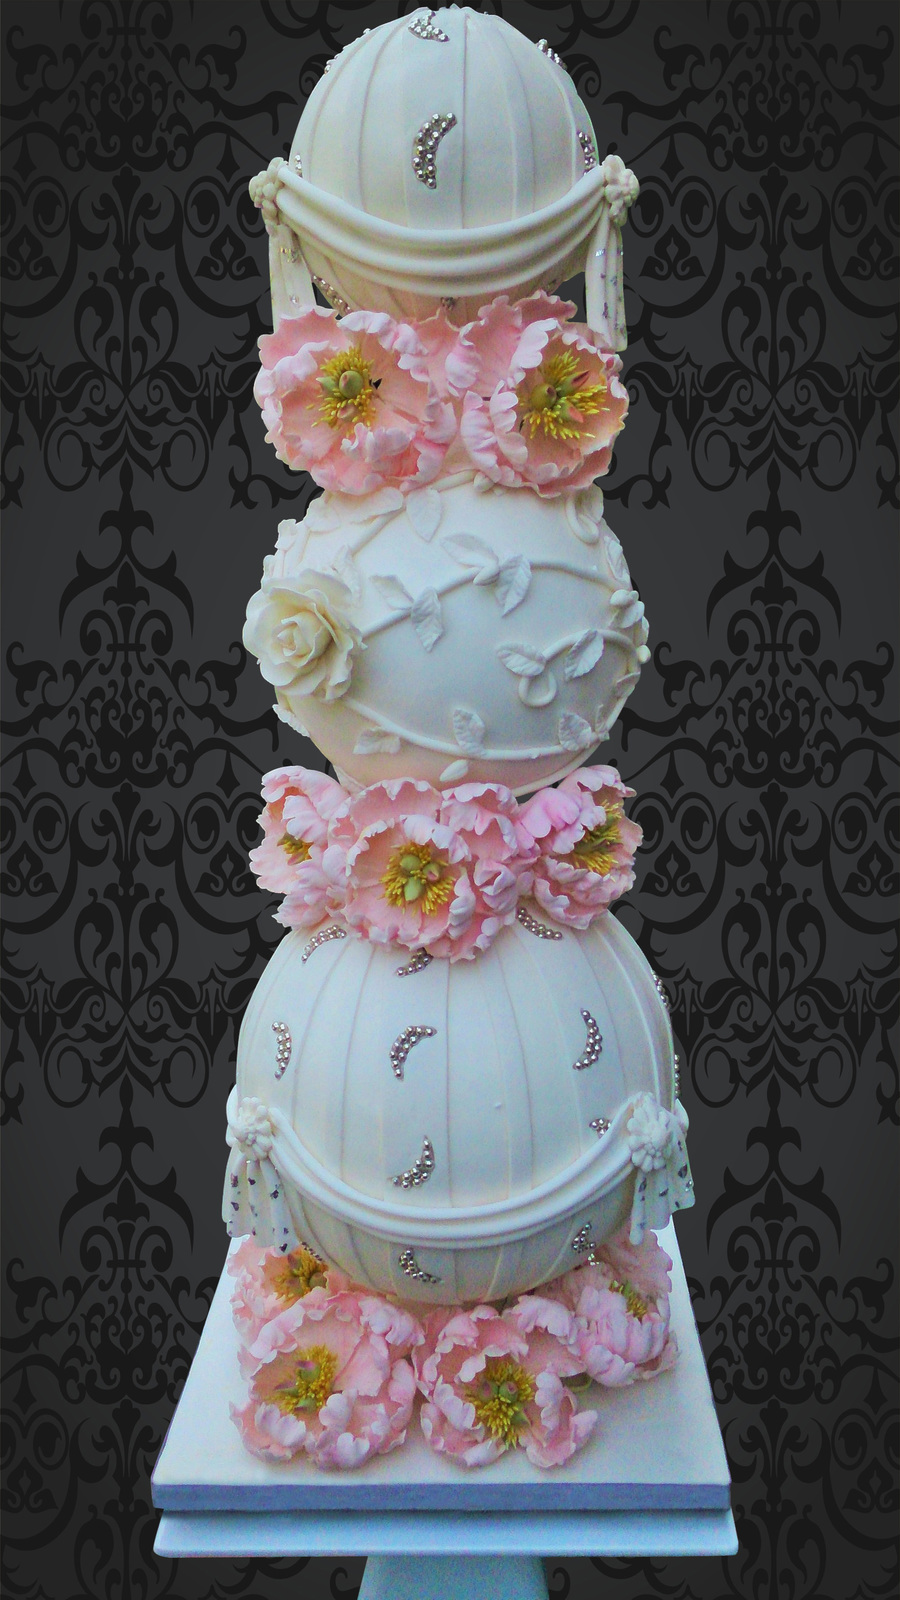 Sphere Wedding Cake By Elaine Rhule Of Designer Cakes Of London - Sphere Wedding Cake